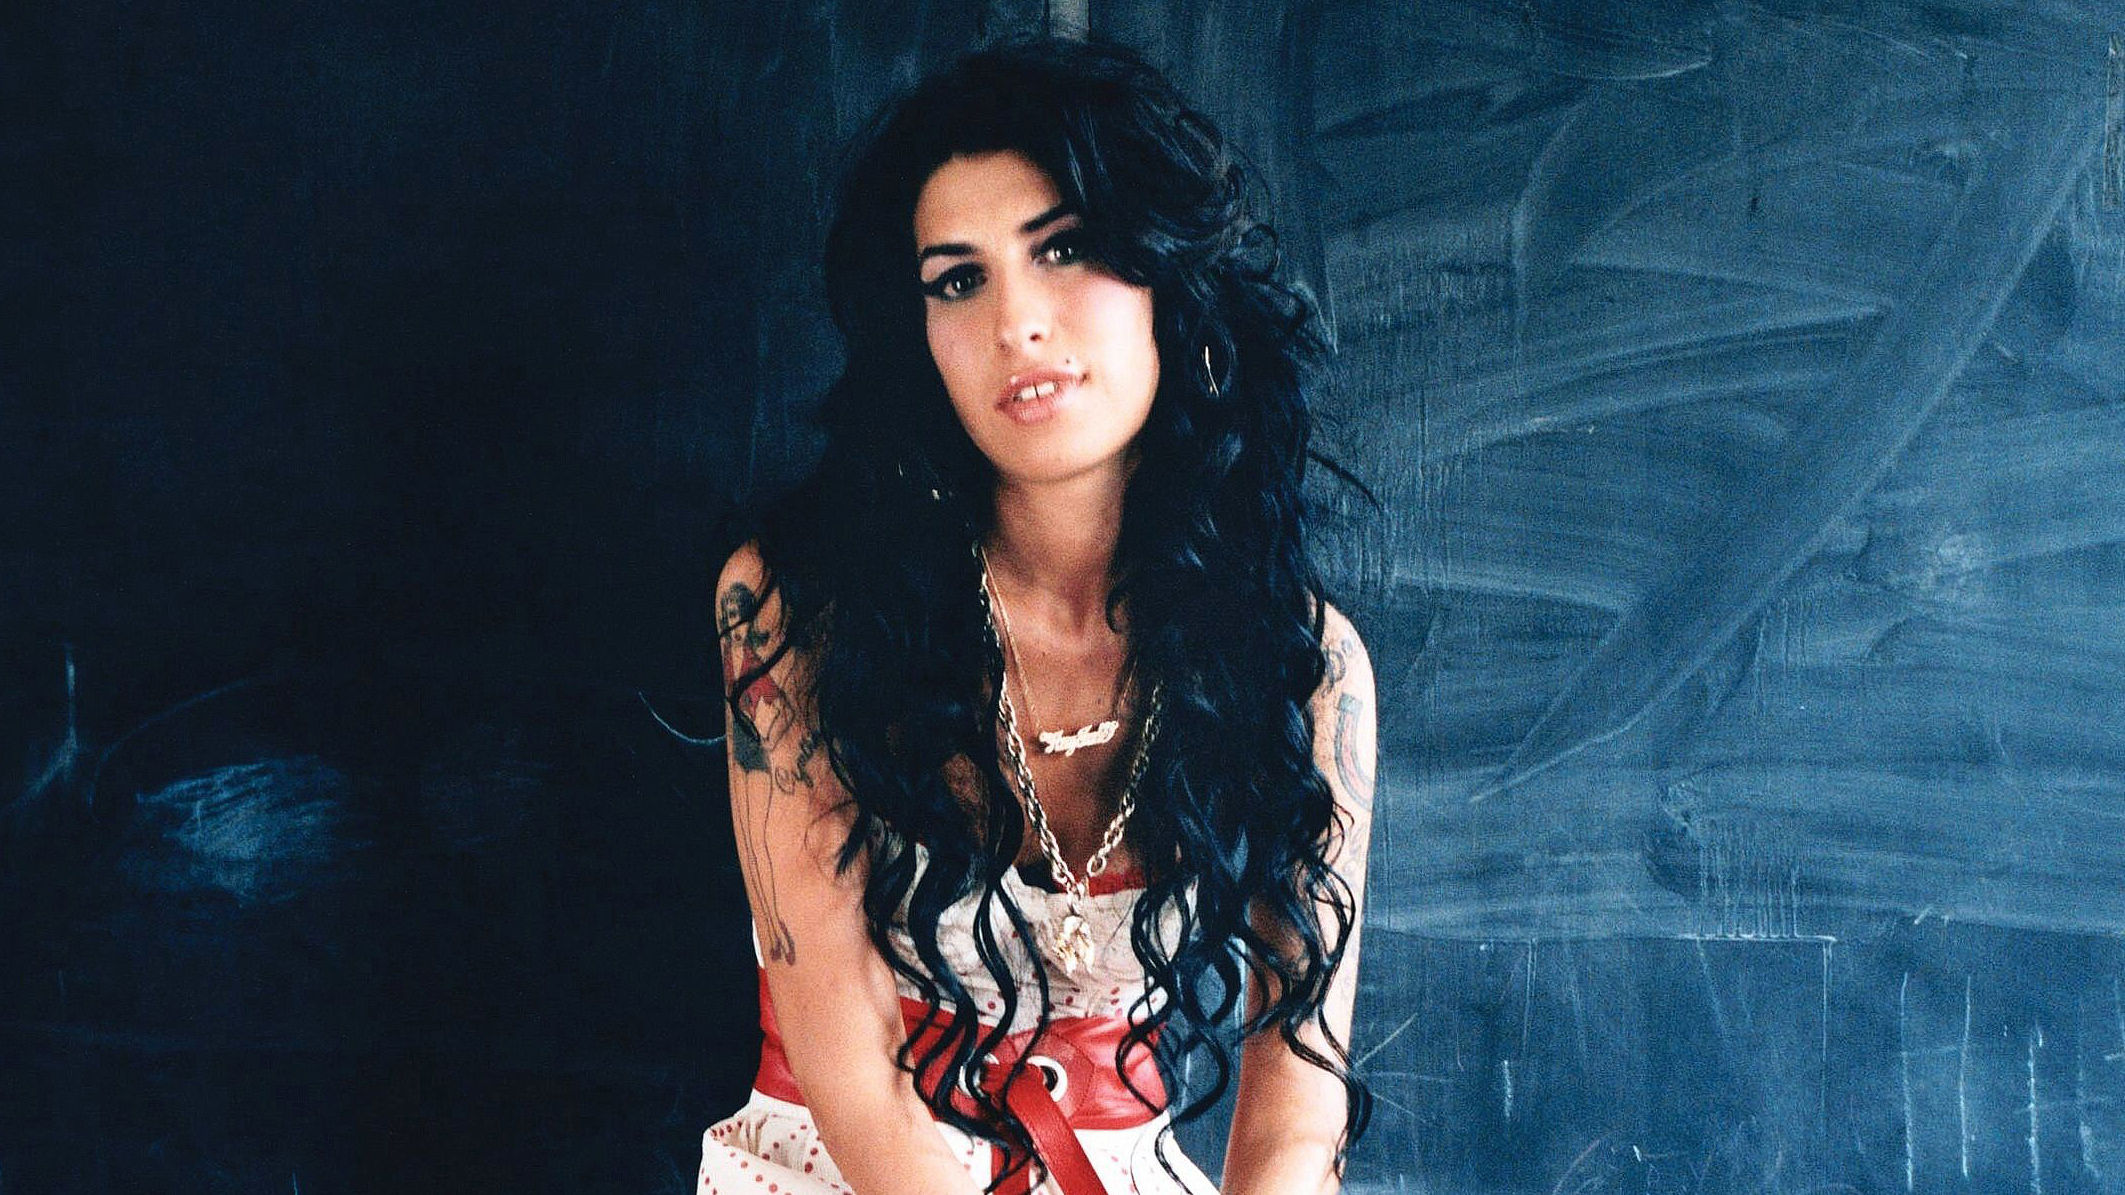 Amy Winehouse The Grammy Winning British Retro Soul Singer Whose Remarkable Musical Achievements Were Often Overshadowed By Her Tumultuous Personal Life